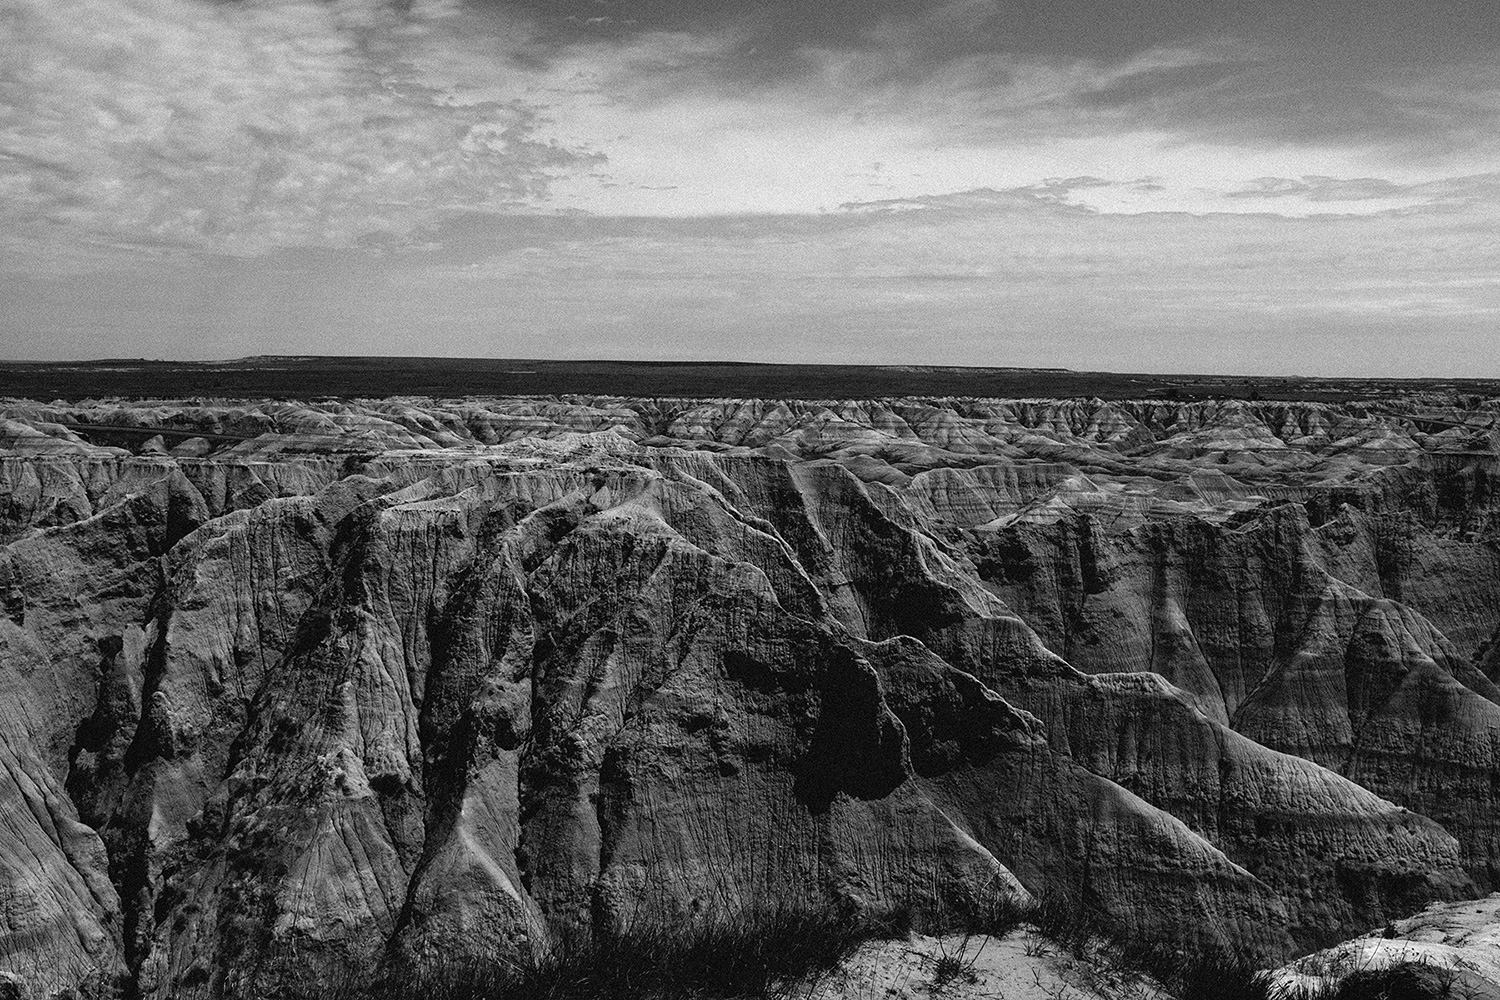 With countless observation areas, Badlands are like a sunset: just when you think it can't get any more beautiful, it does!